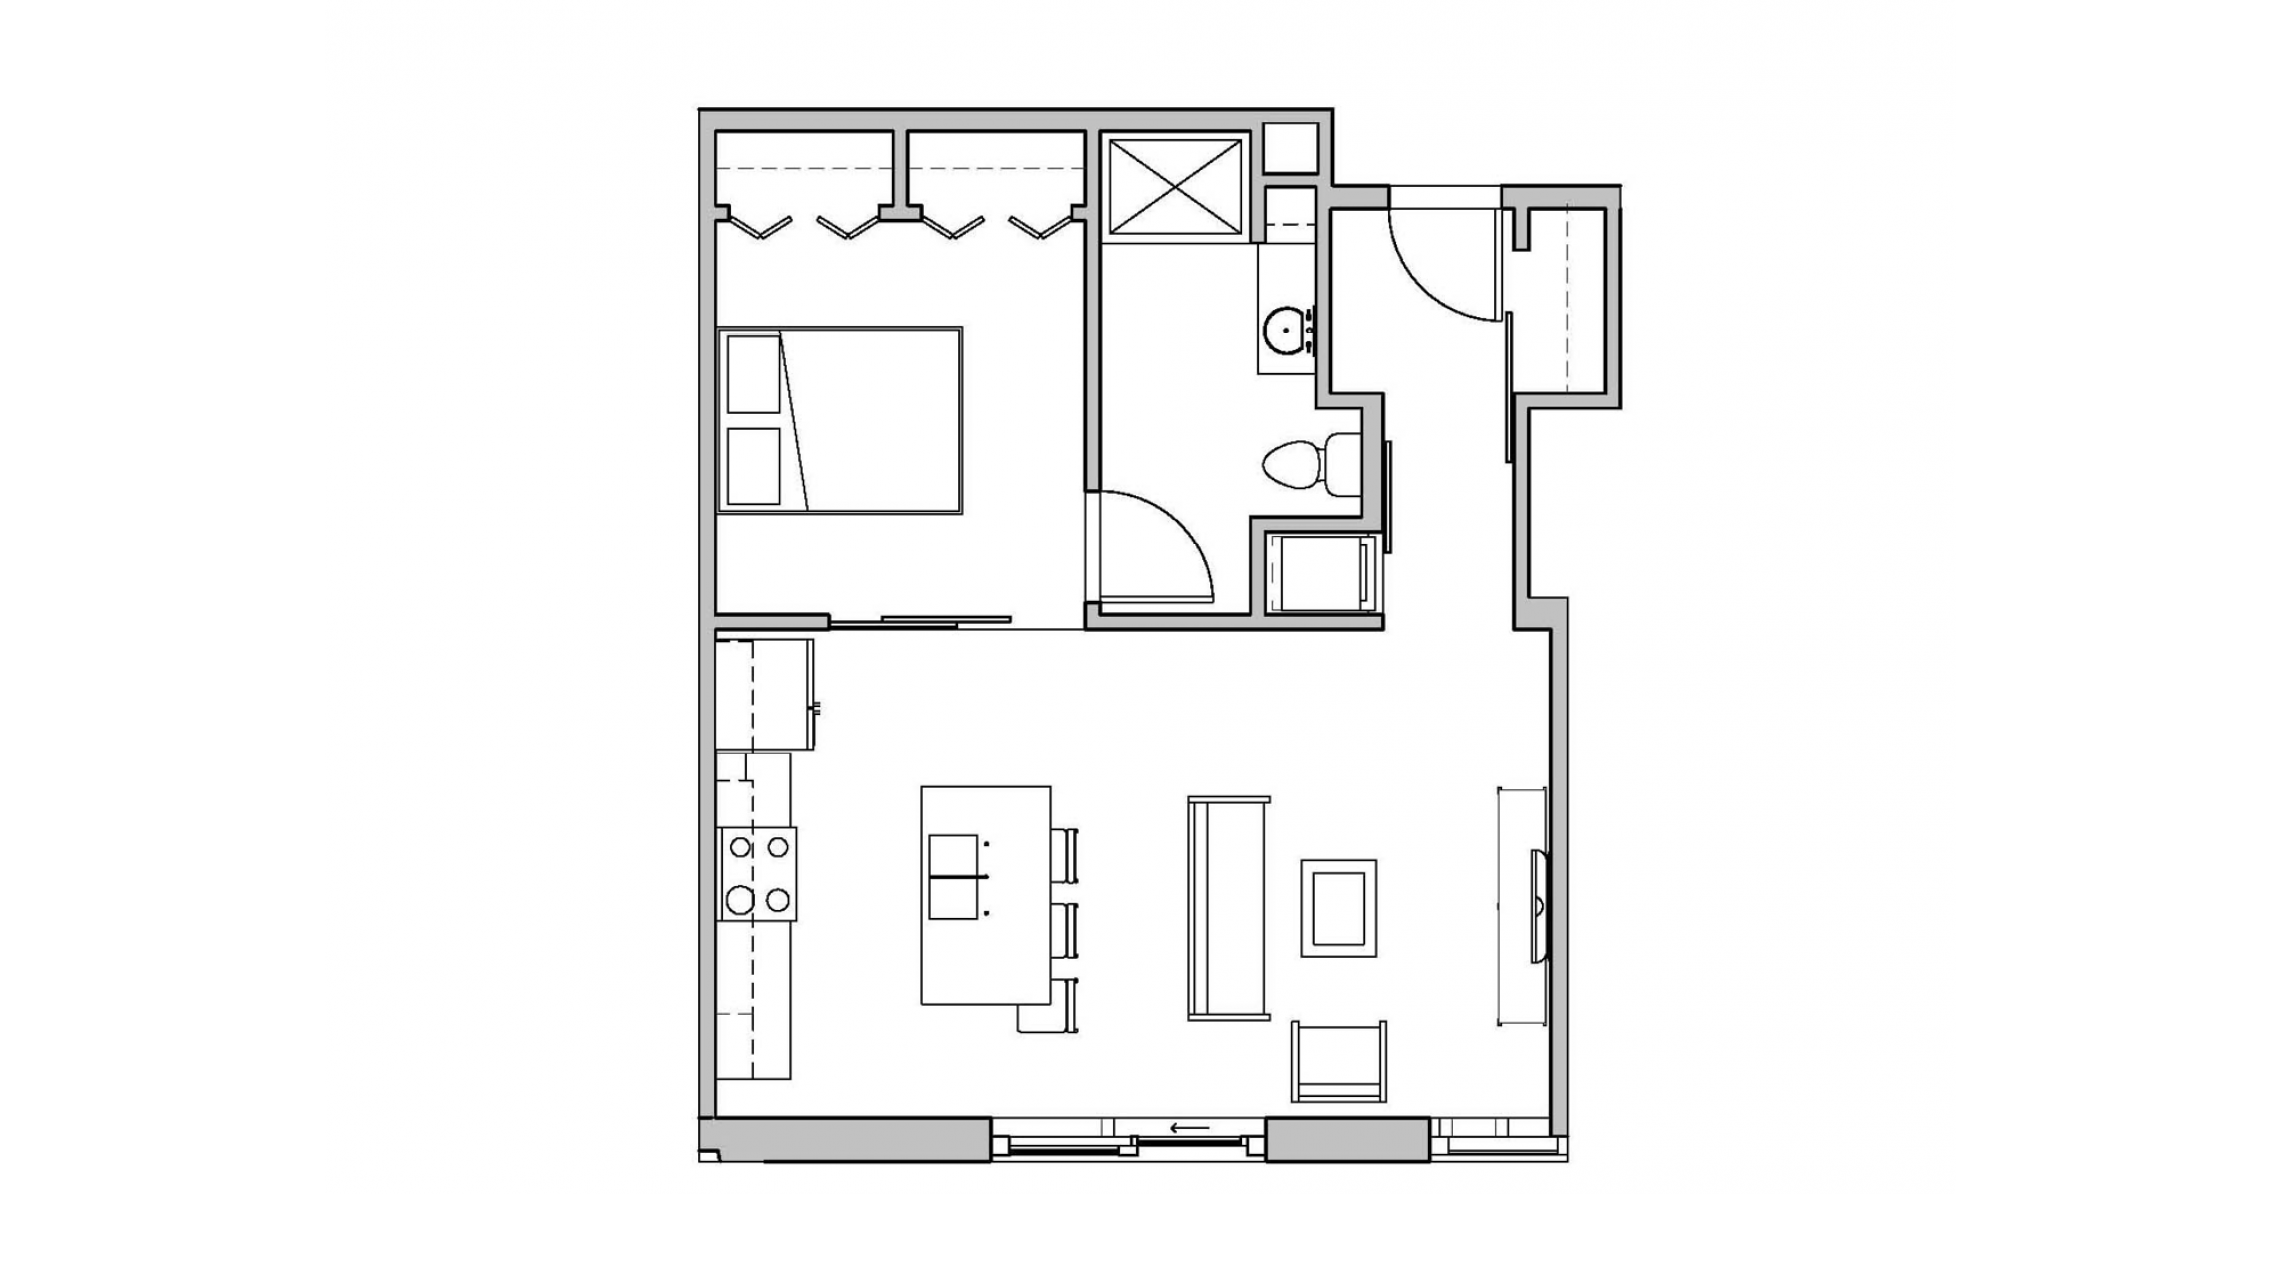 ULI Seven27 113 - One Bedroom, One Bathroom